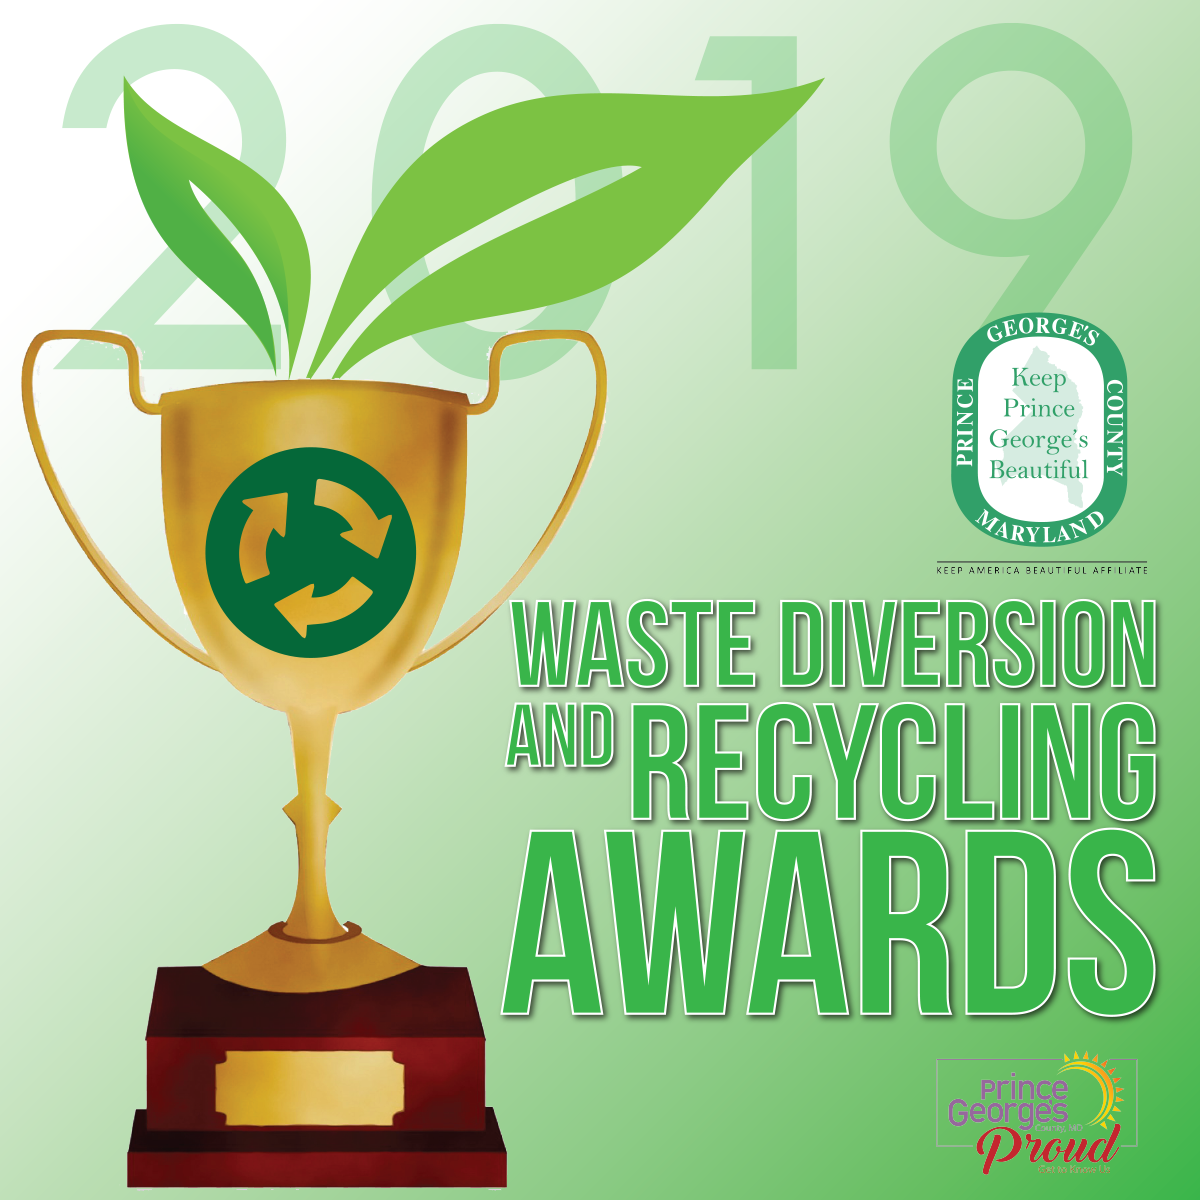 waste diversion and recycling awards graphic